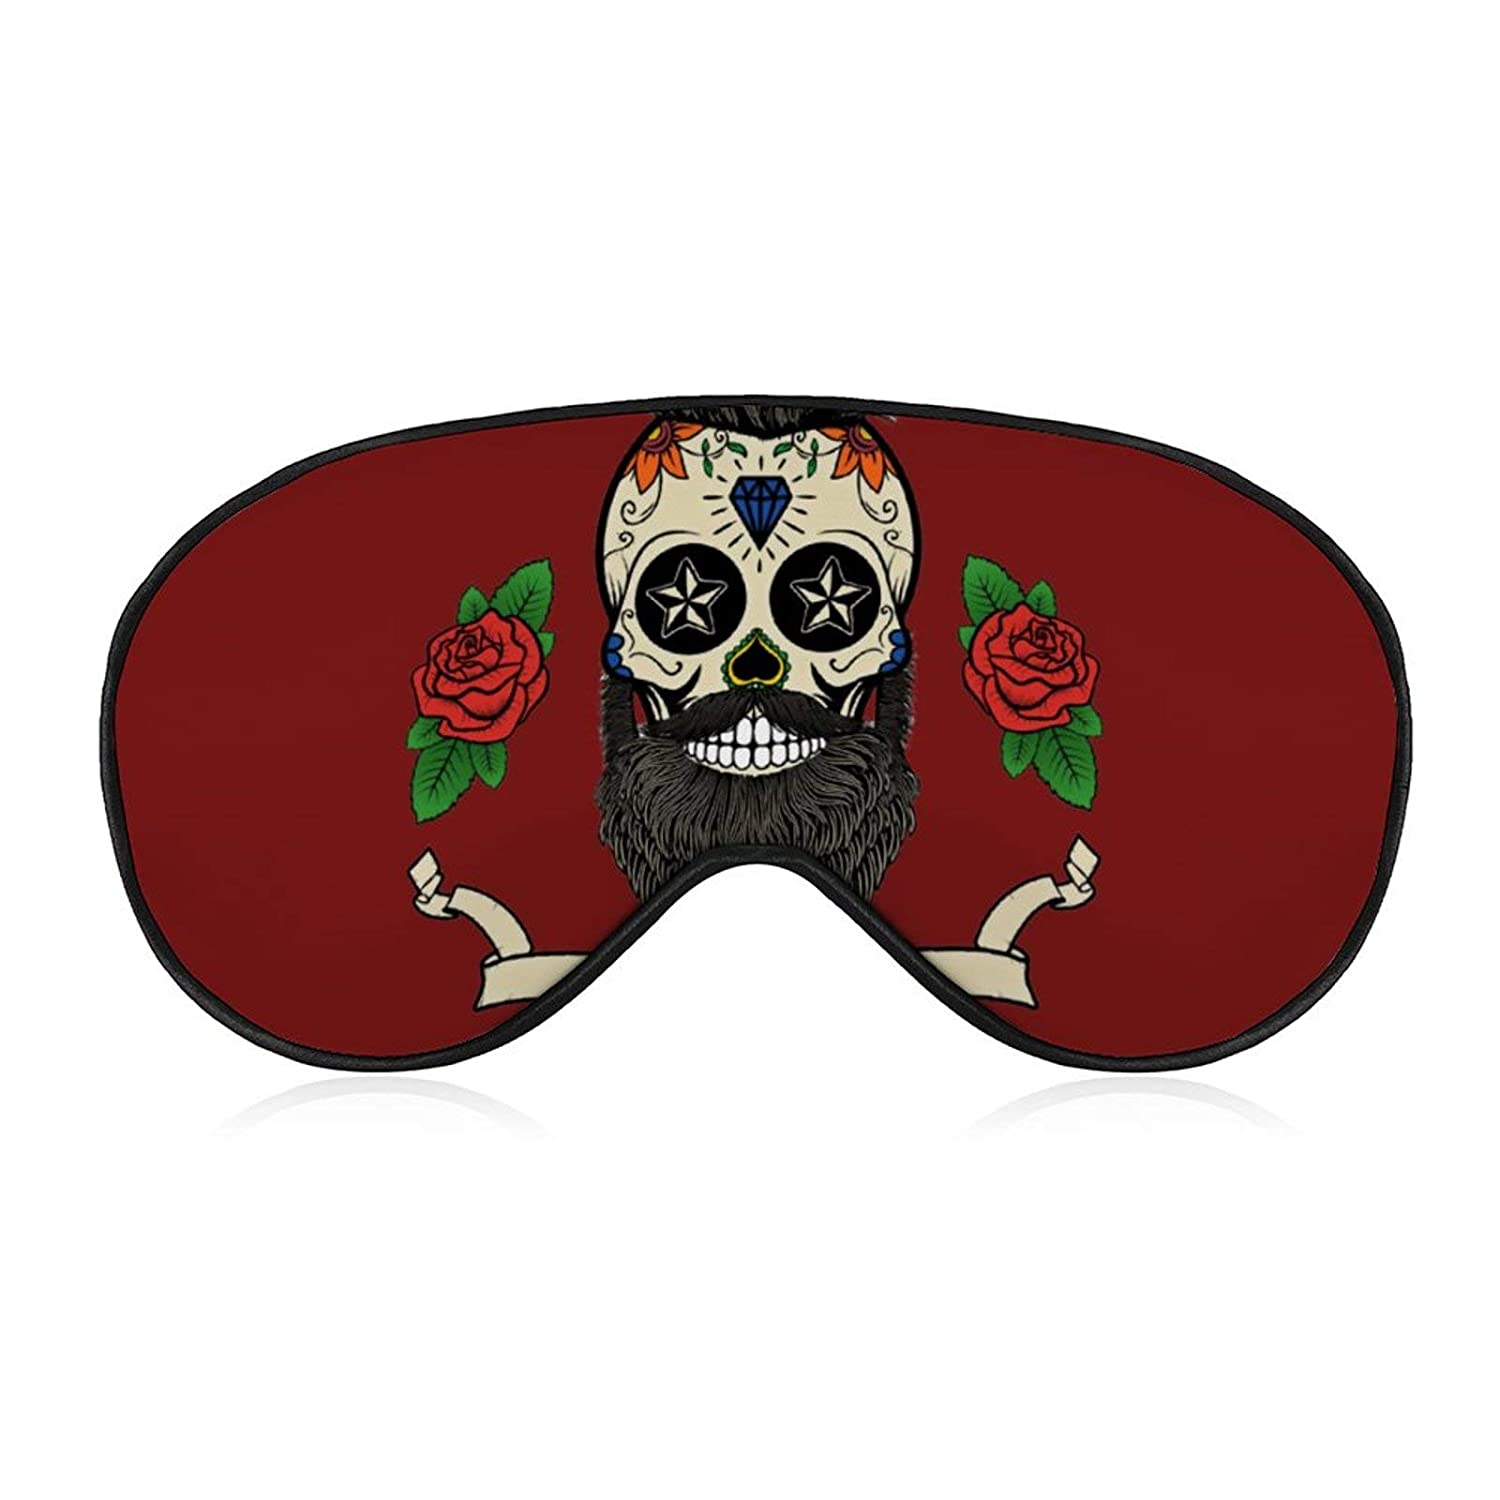 Skull Man Low price Rose Hair Eye mask Cash special price Cute Soft Covers Printing